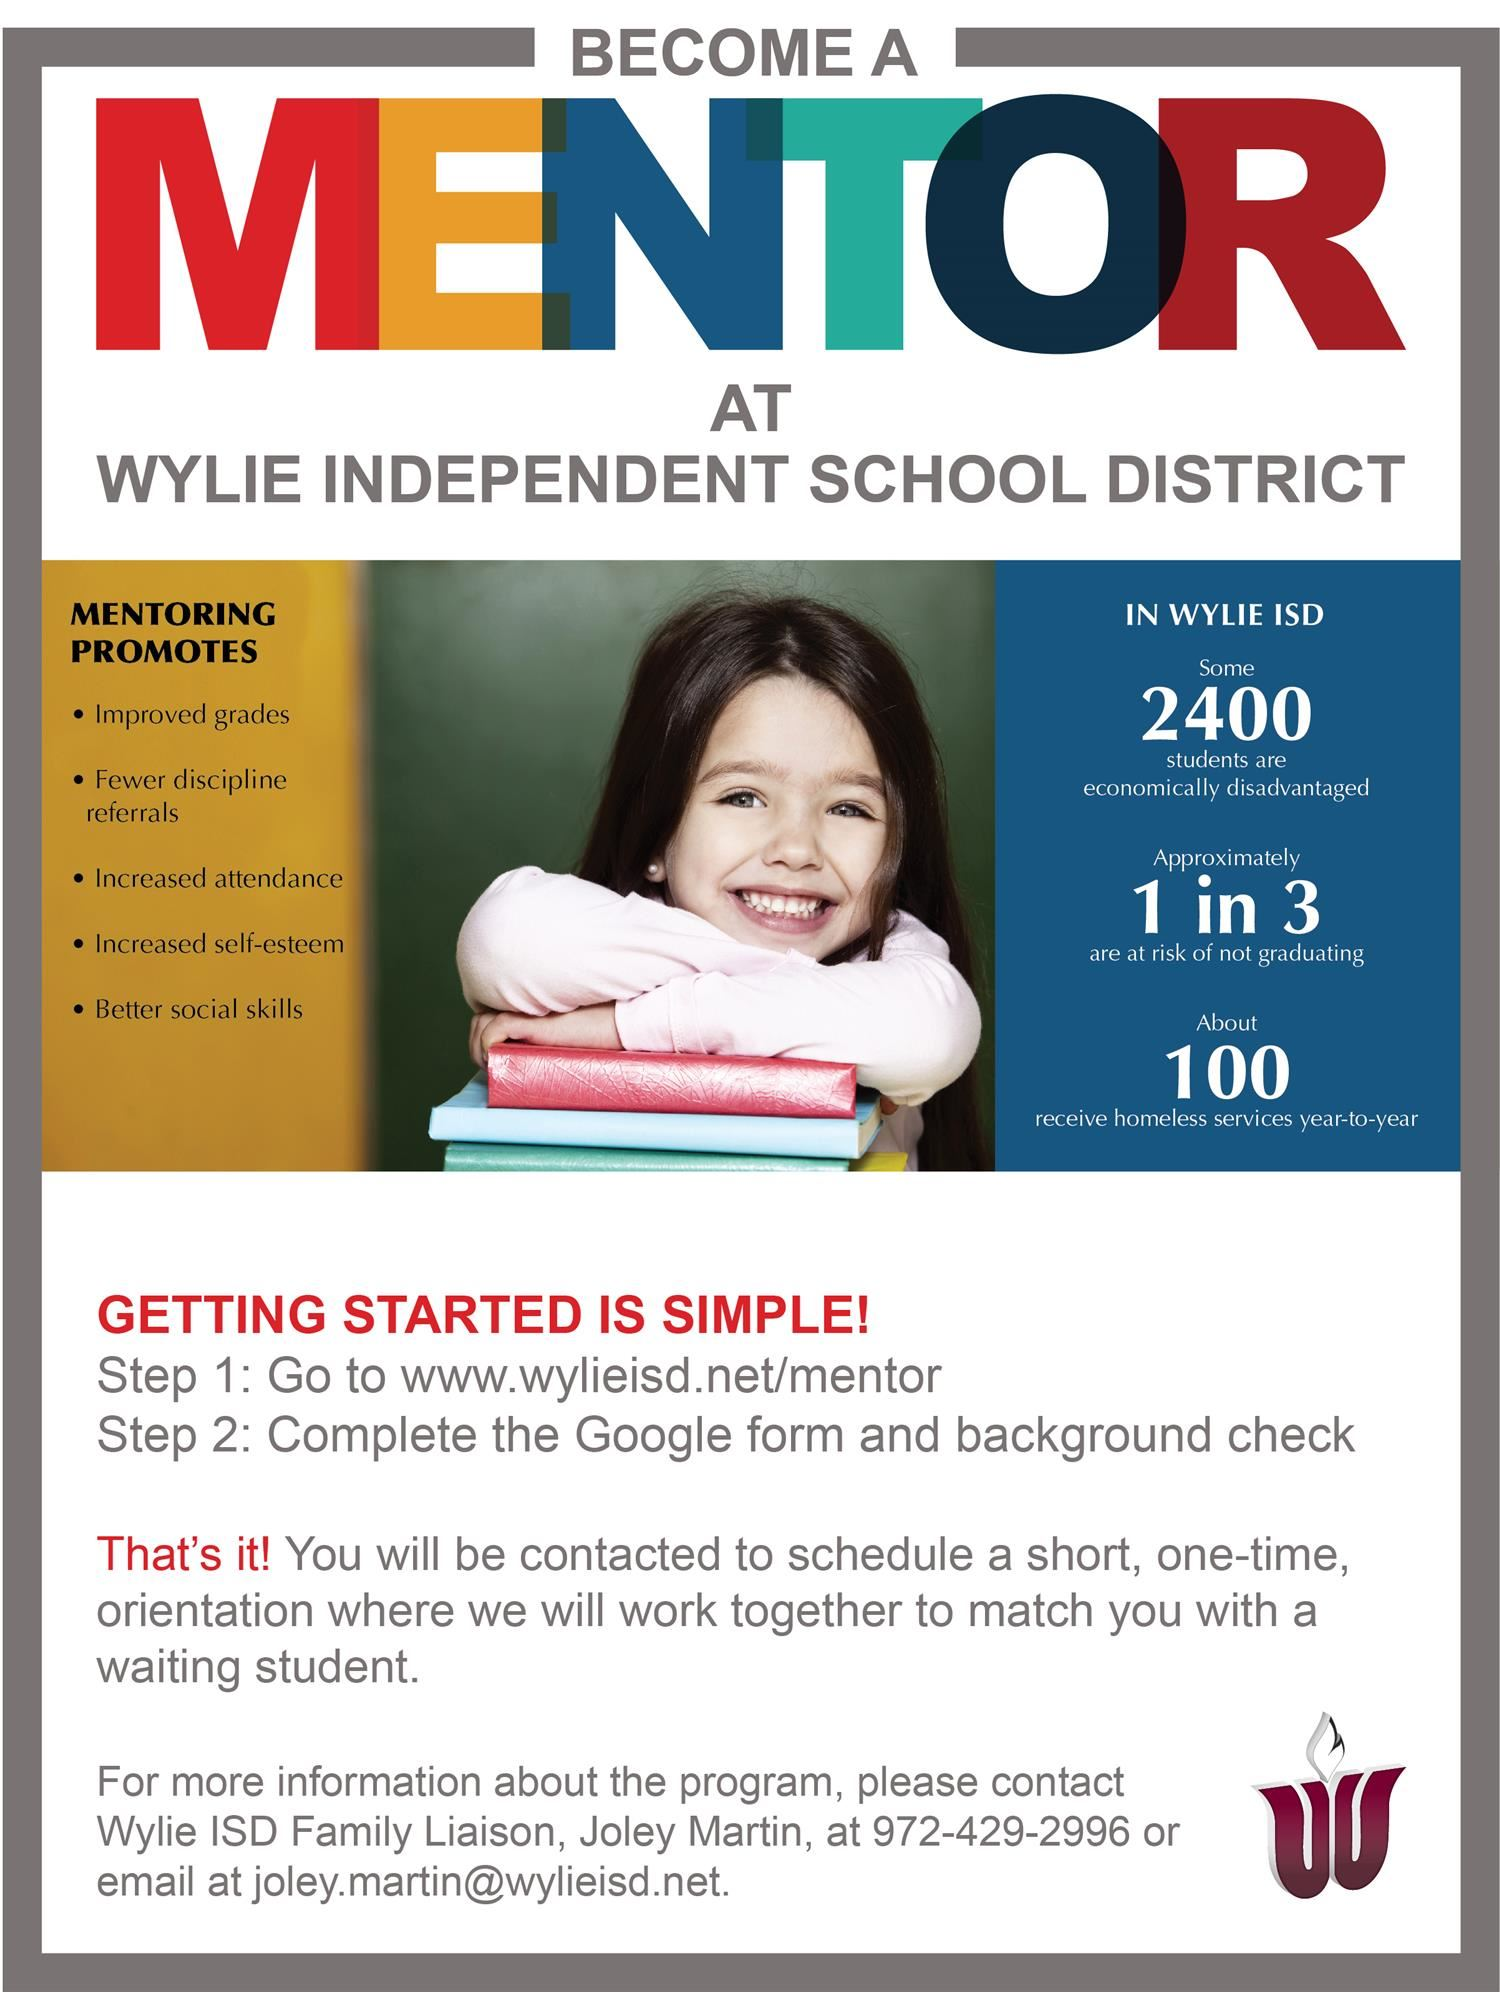 Wylie ISD MENTOR Recruitment